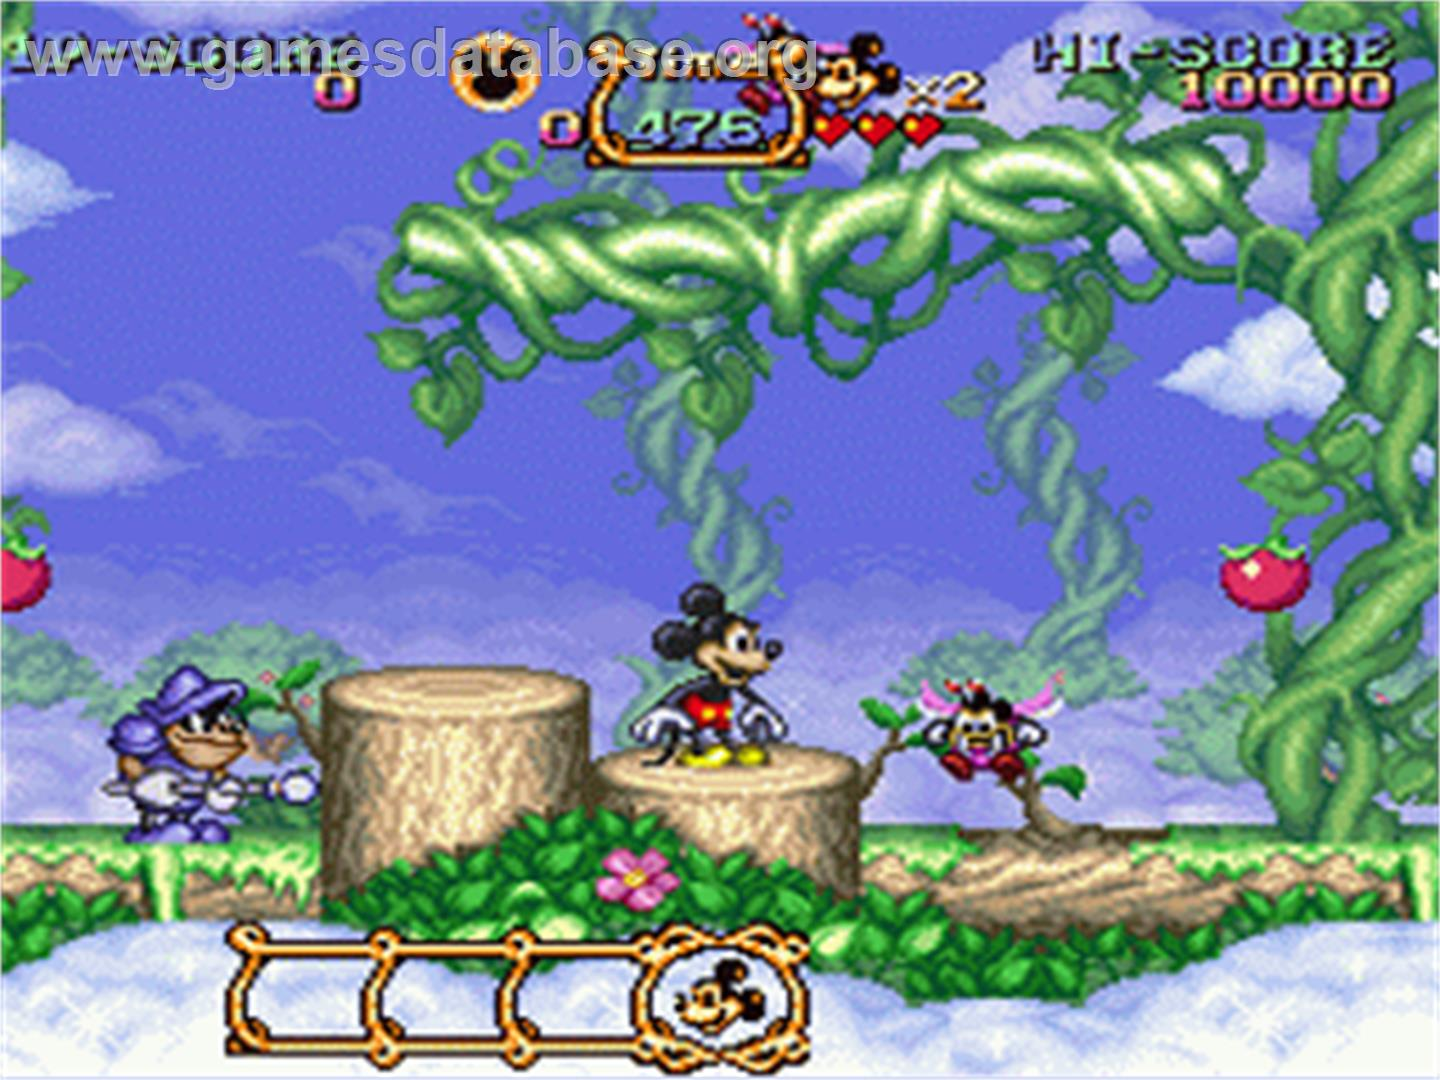 of Disney's Magical Quest Starring Mickey Mouse on the Nintendo SNES